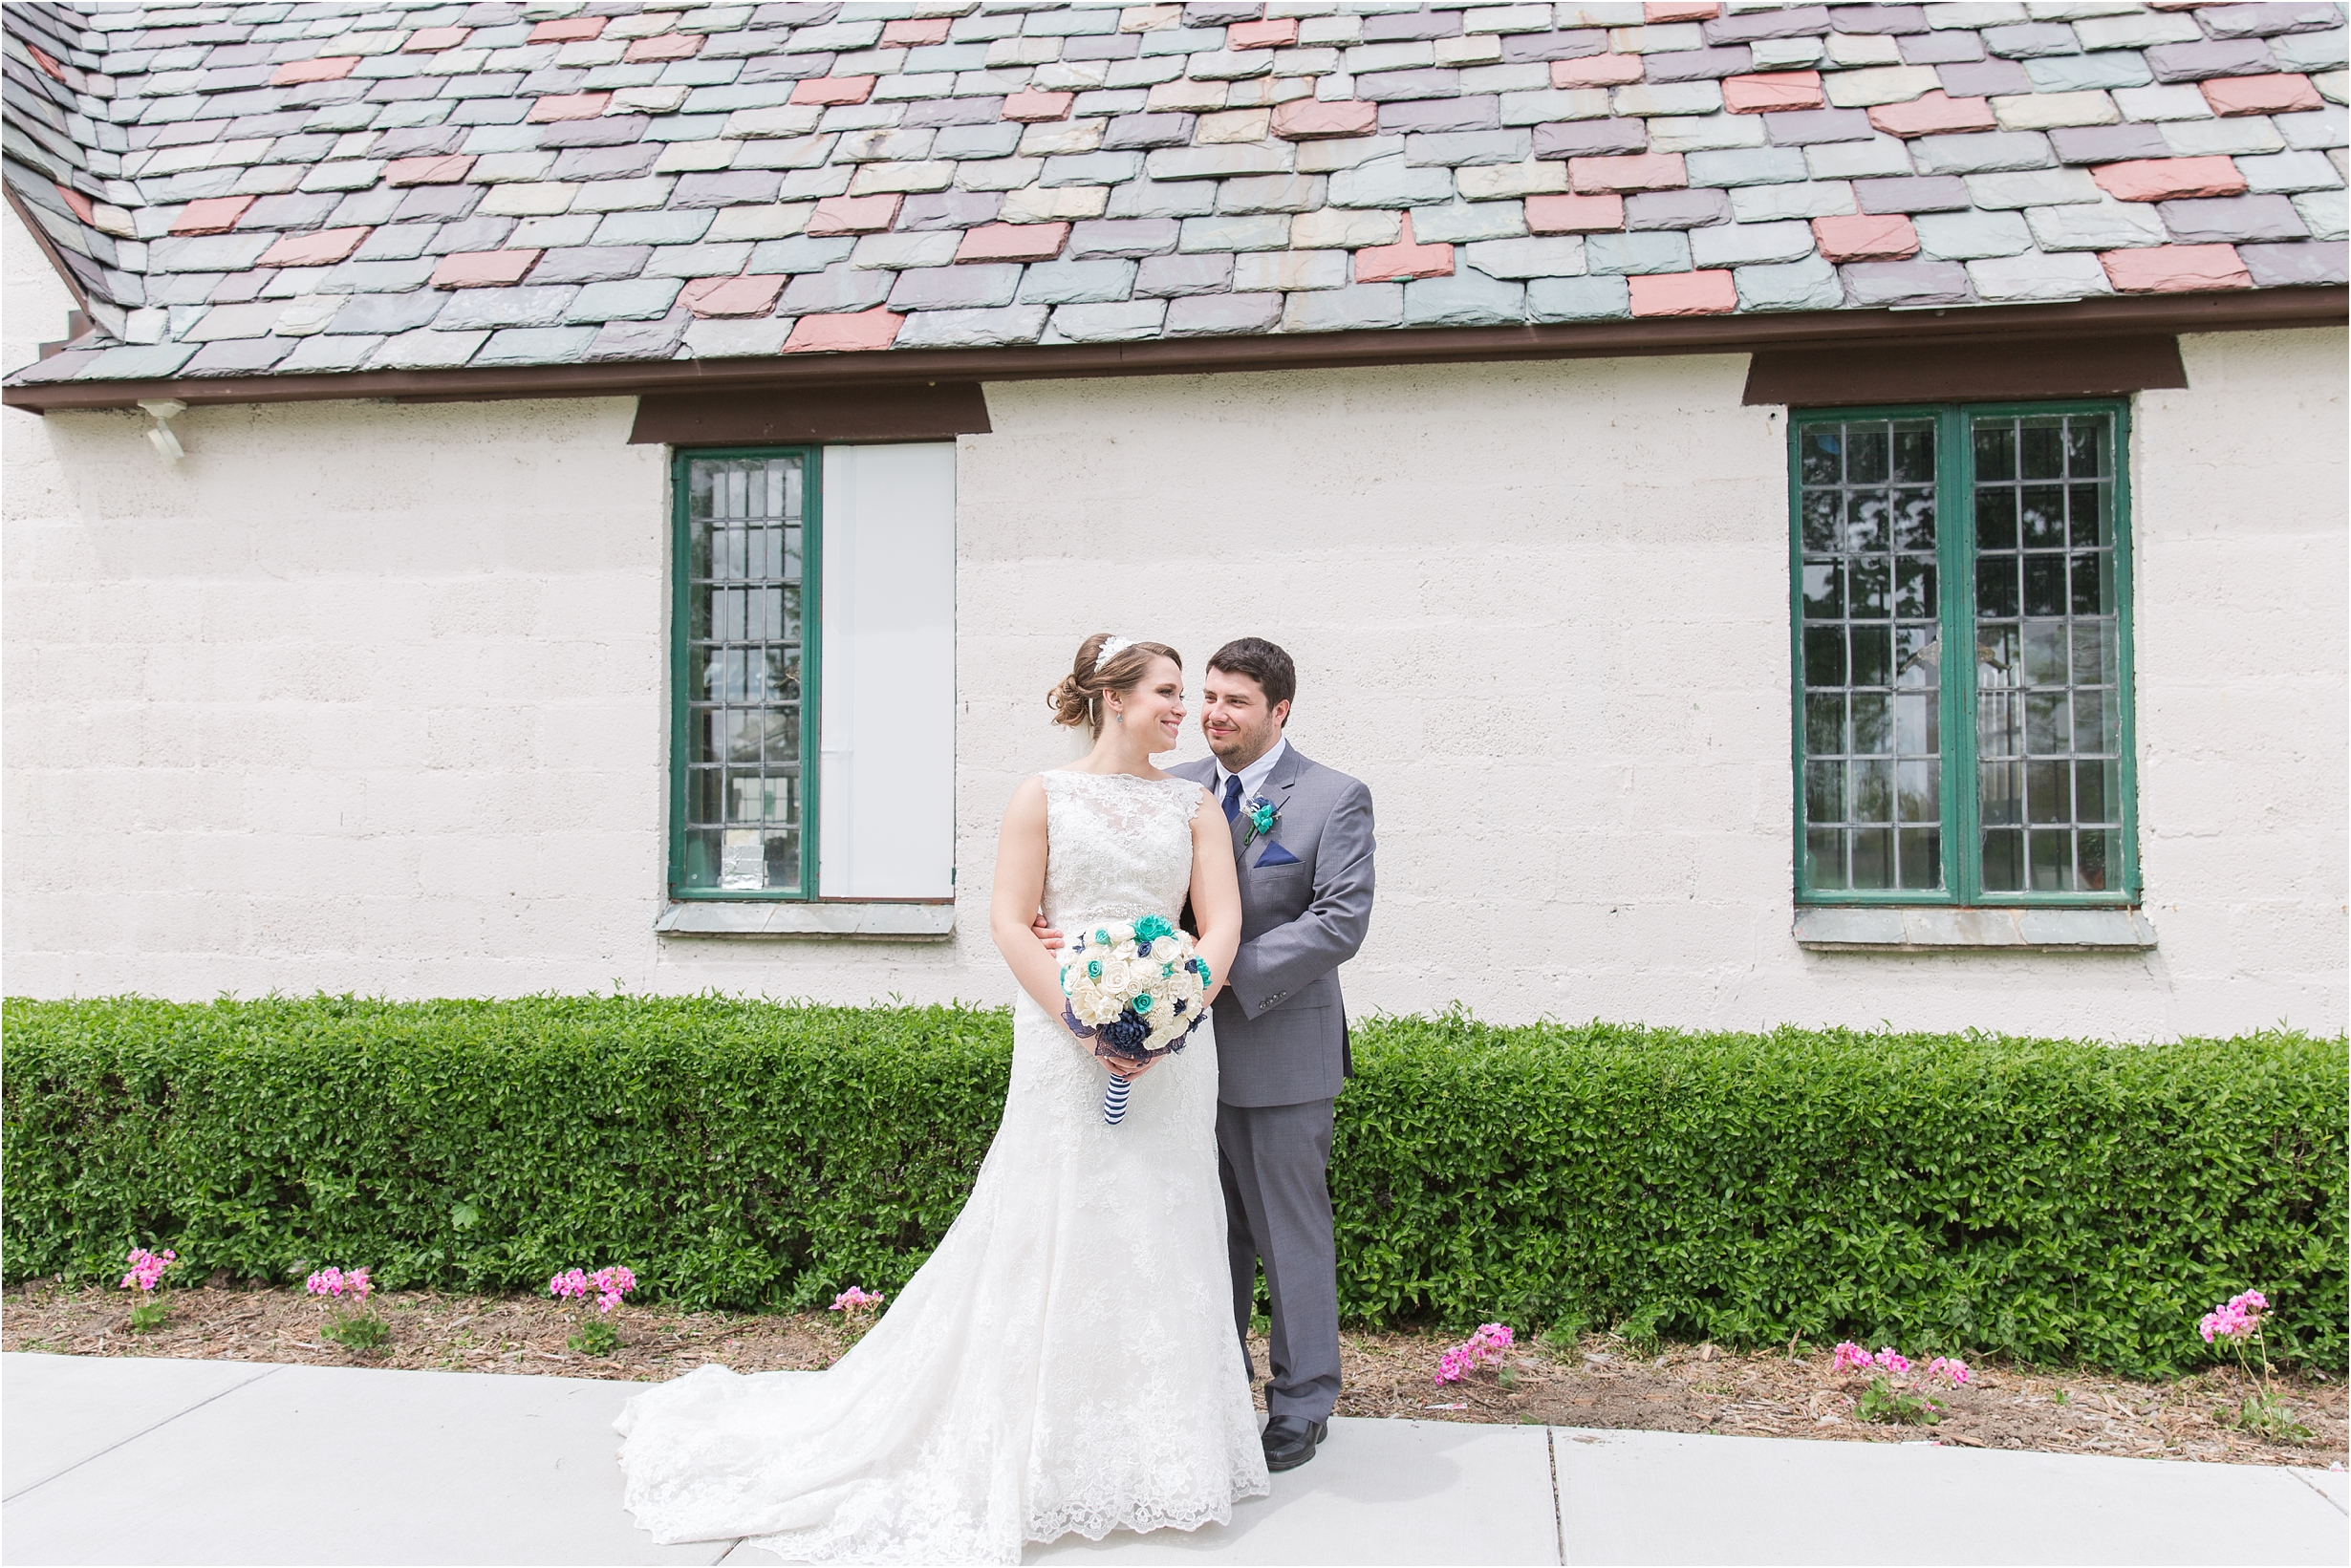 romantic-timeless-candid-wedding-photos-at-the-packard-proving-grounds-by-courtney-carolyn-photography_0004.jpg